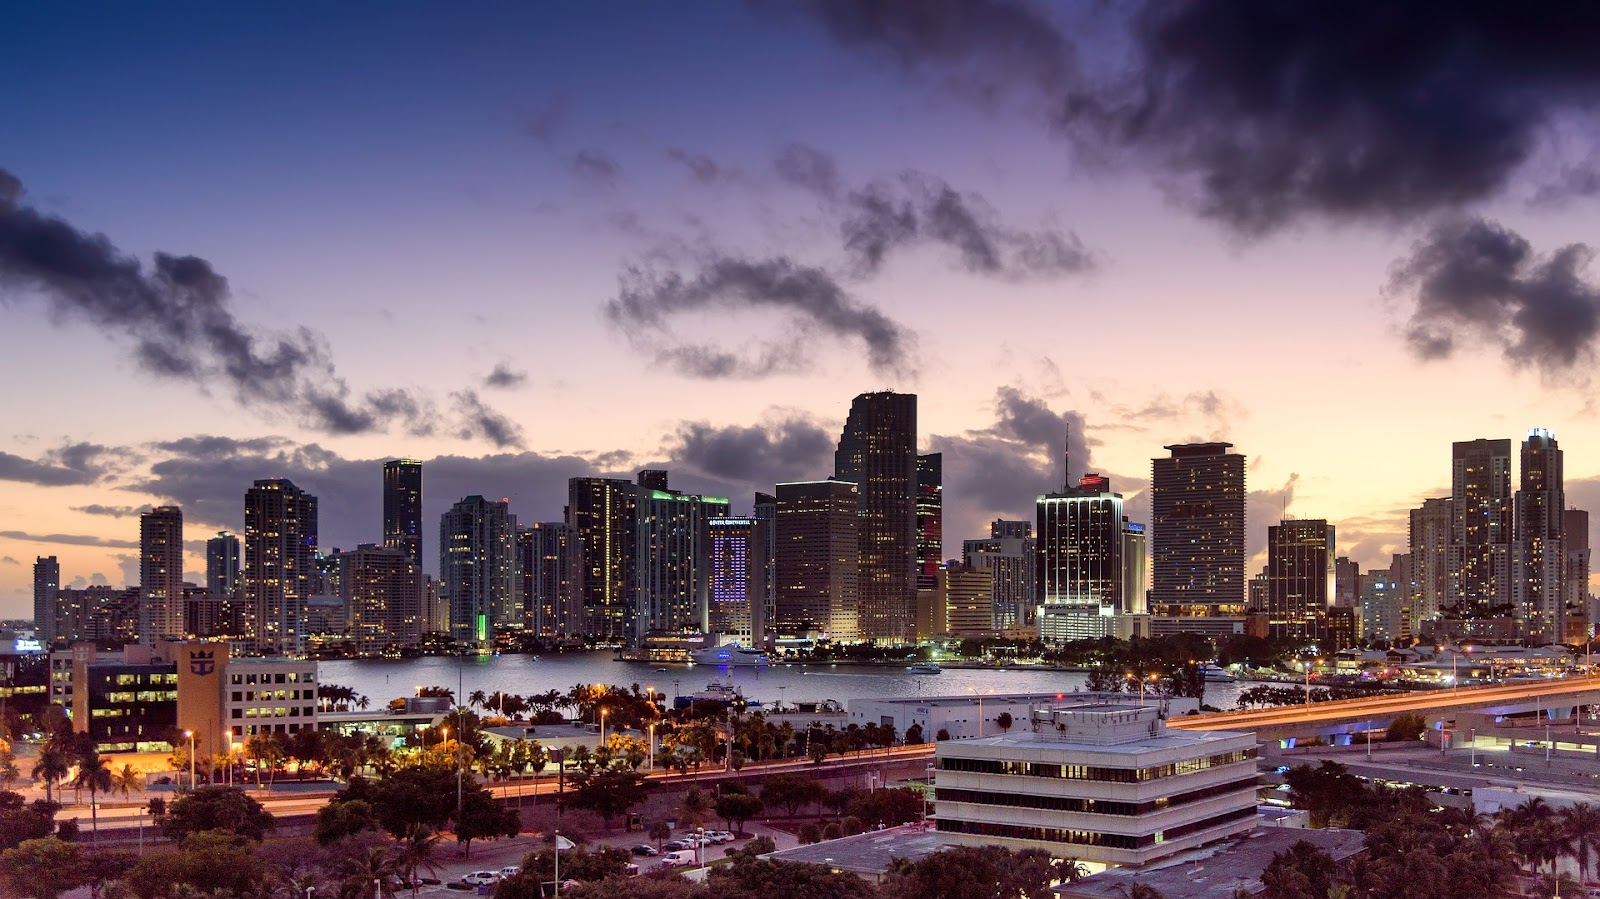 miami beach skyscrapers city skyline and water in foreground during colorful sunset in florida. See this coastal city during a Florida road trip